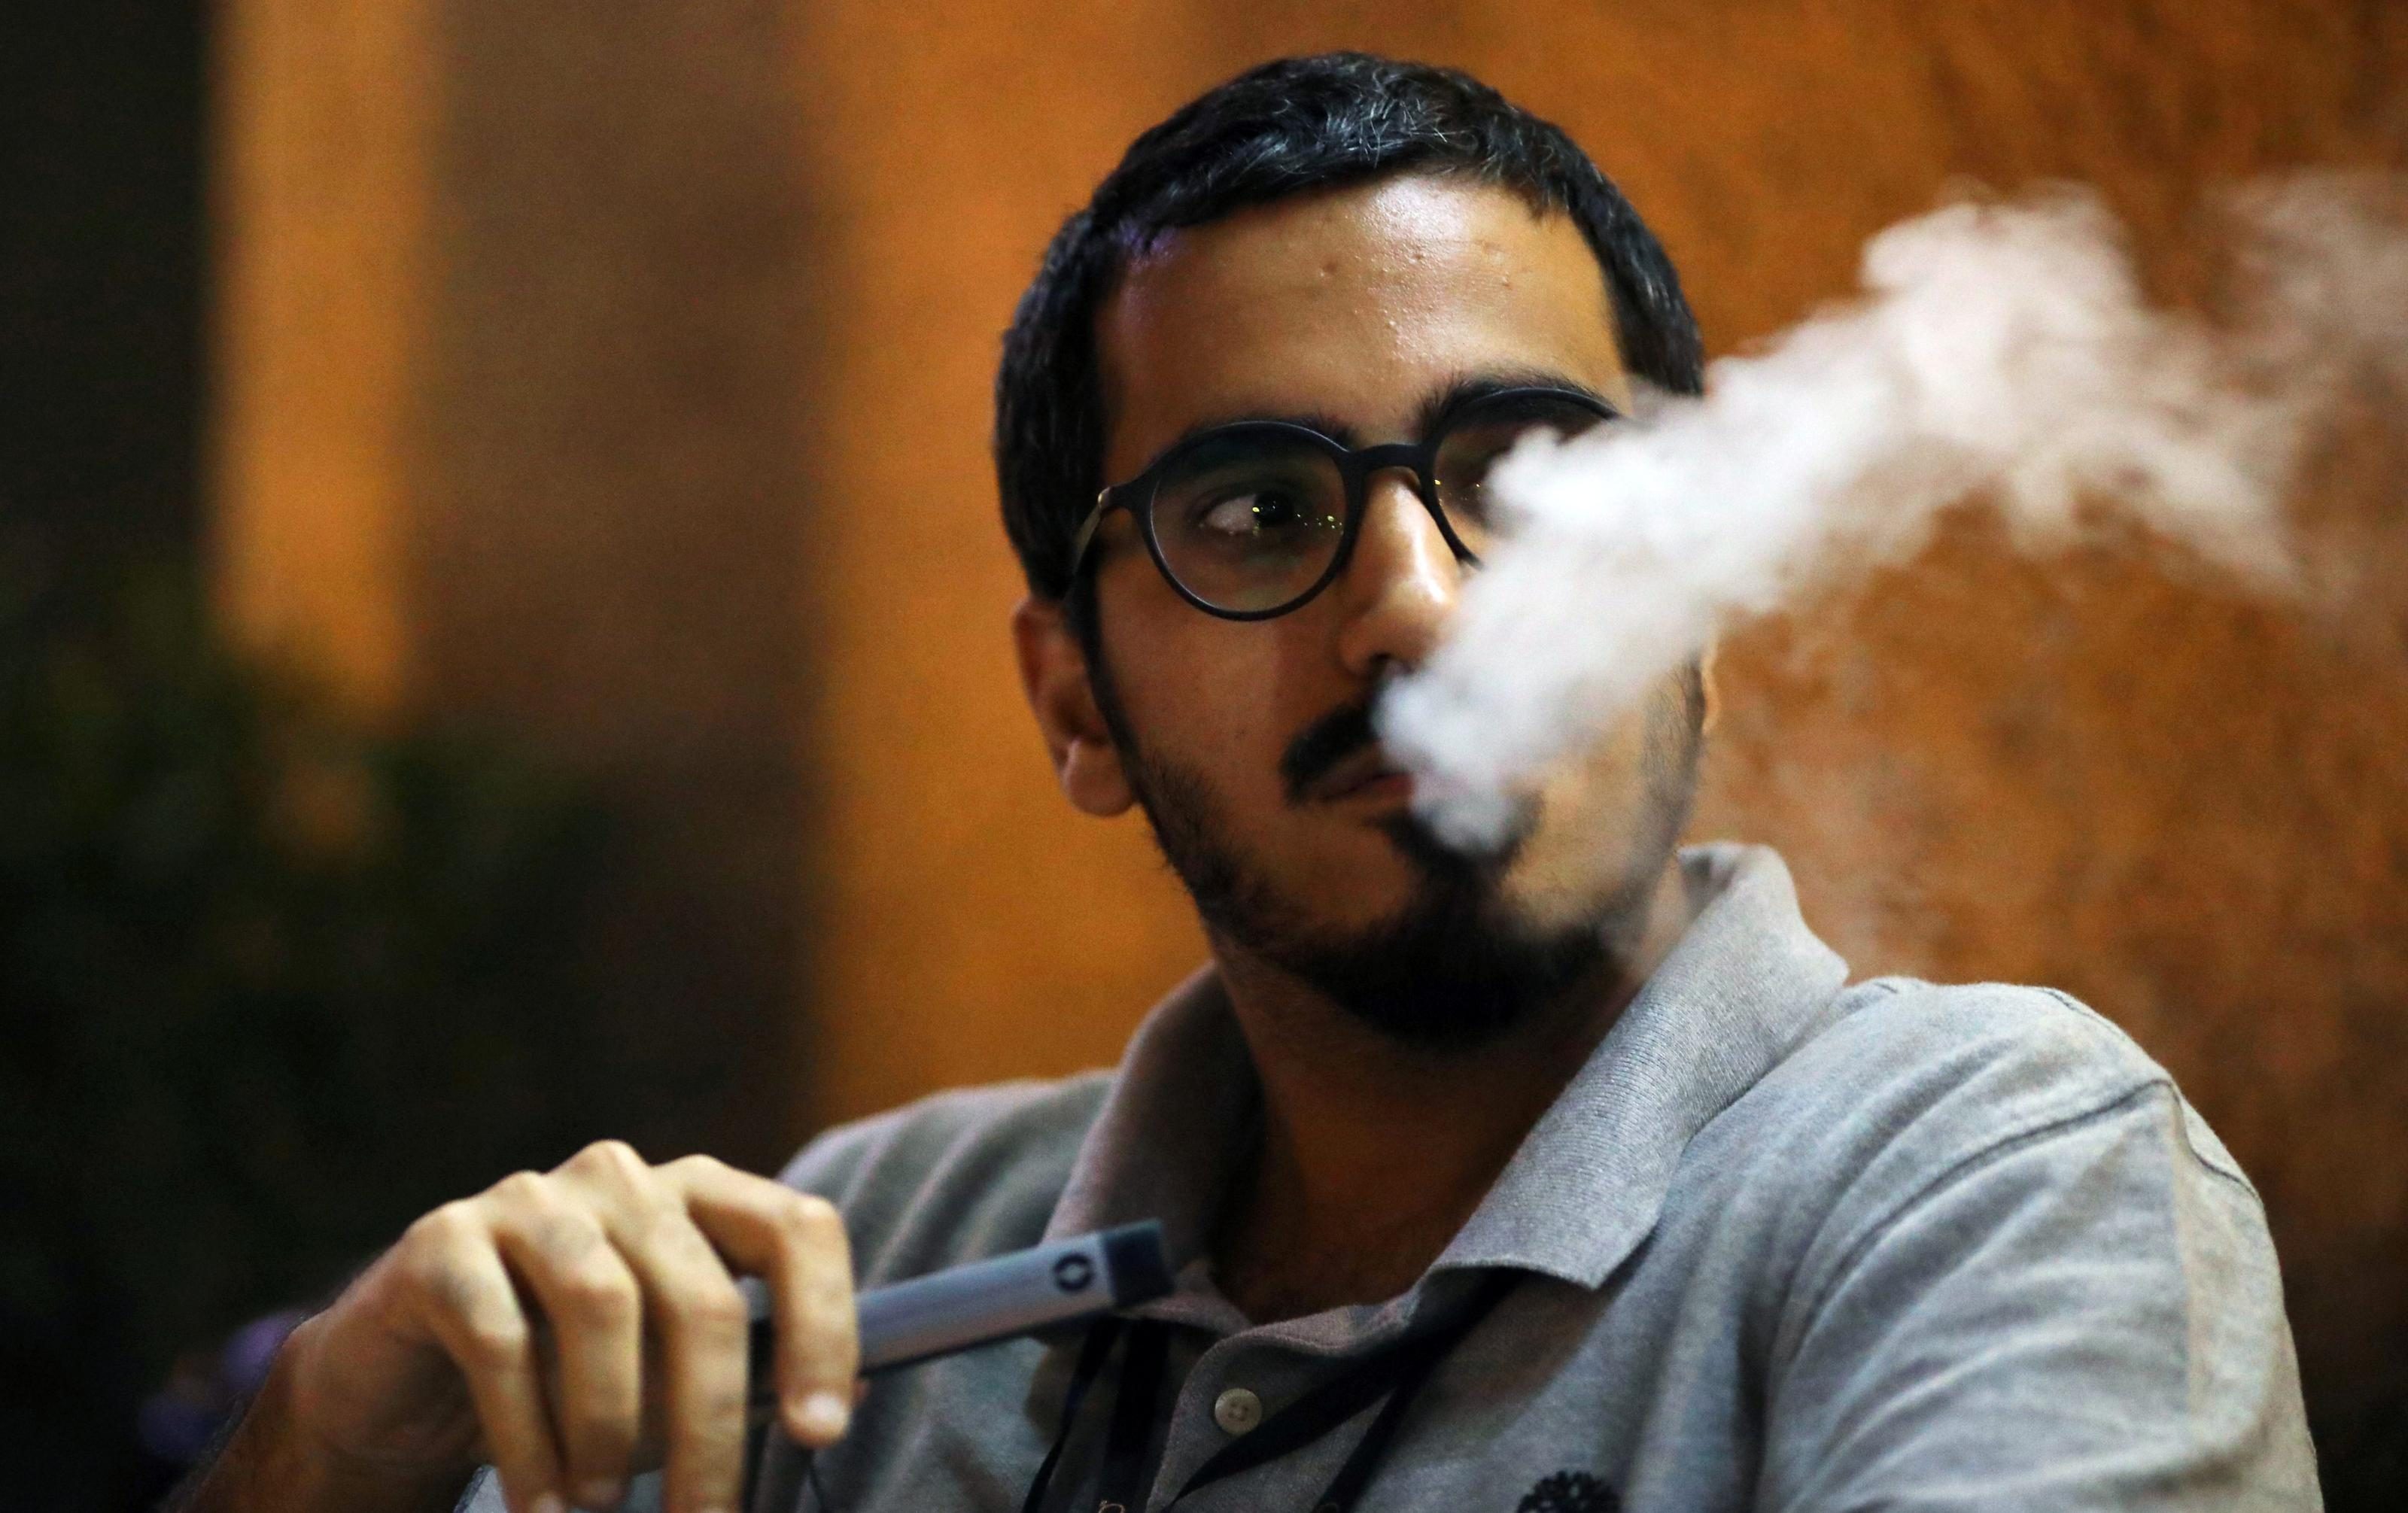 India's ban on vaping has little to do with health impact